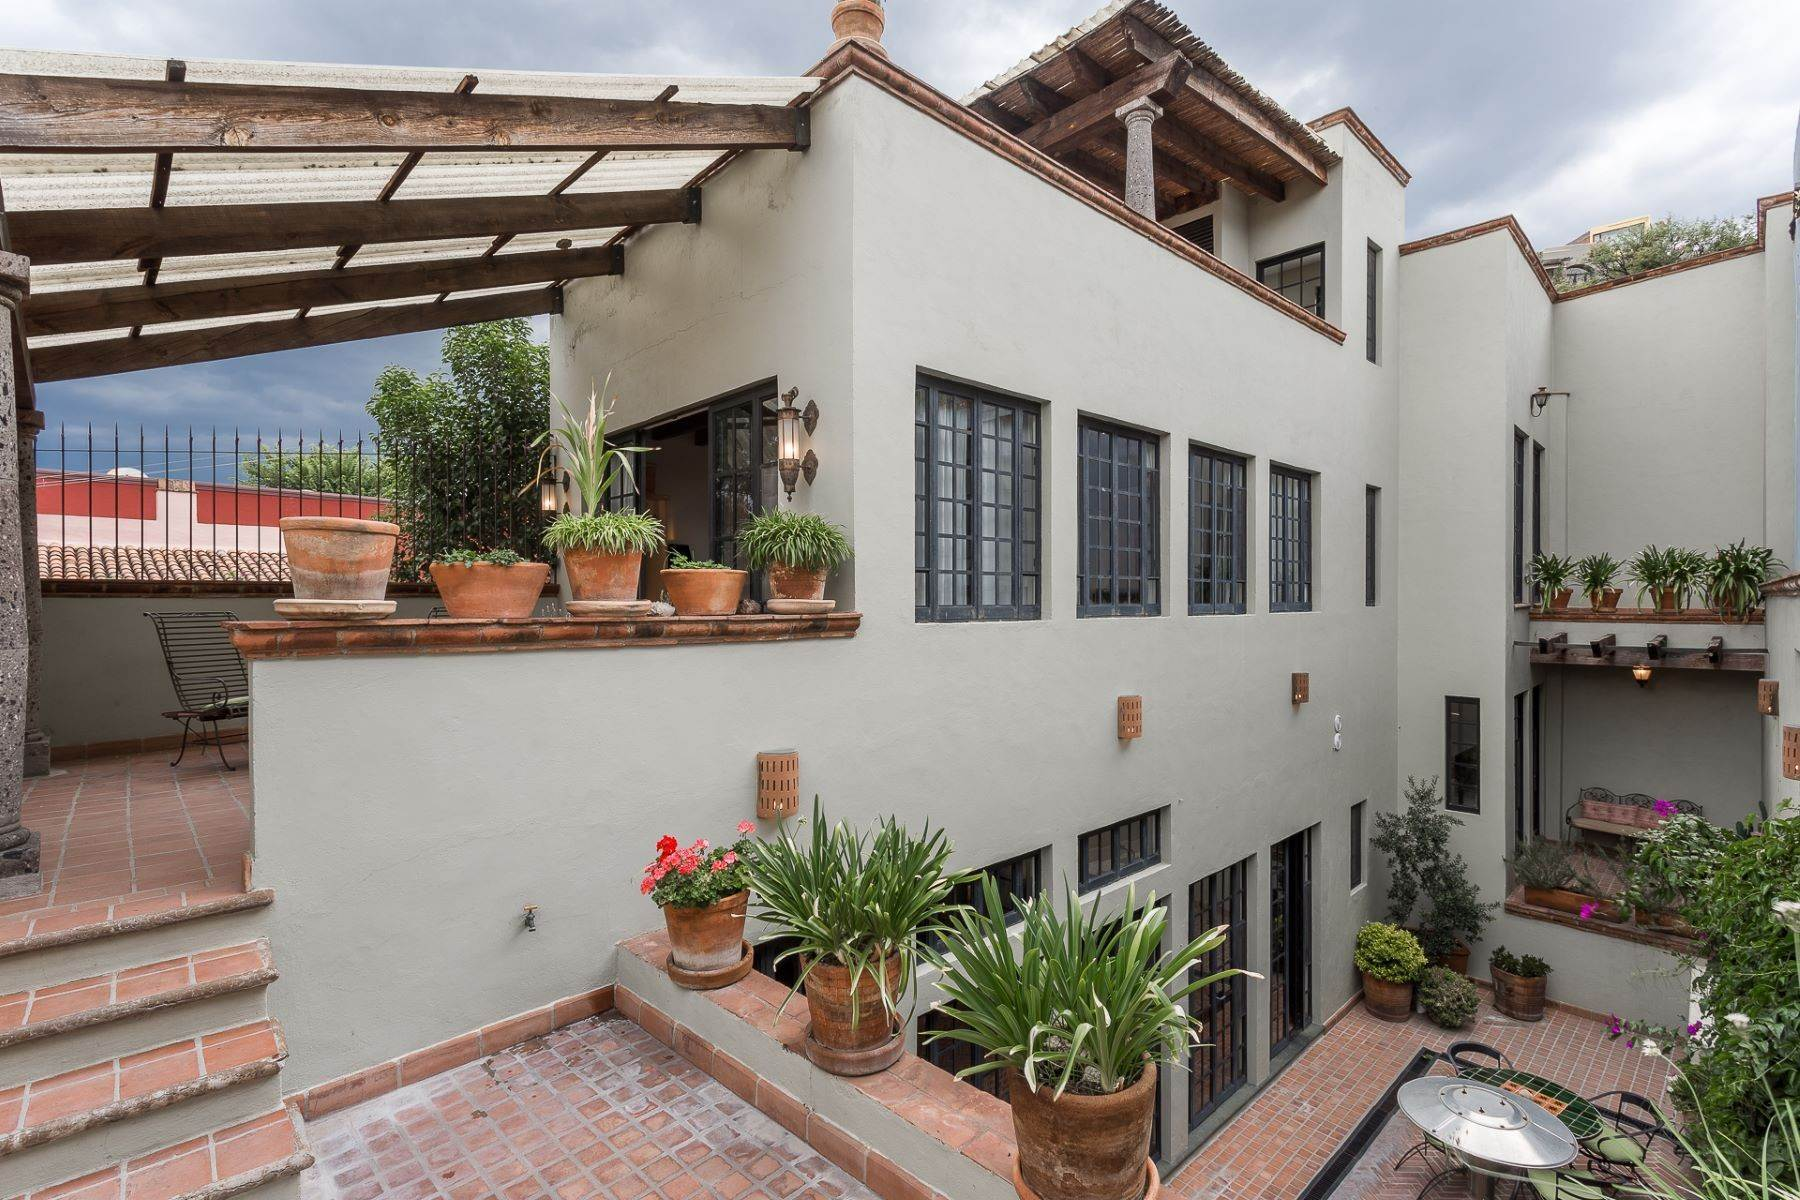 Single Family Homes for Sale at Casa Chepito Callejon de Chepito 2A San Miguel De Allende, Guanajuato 37700 Mexico